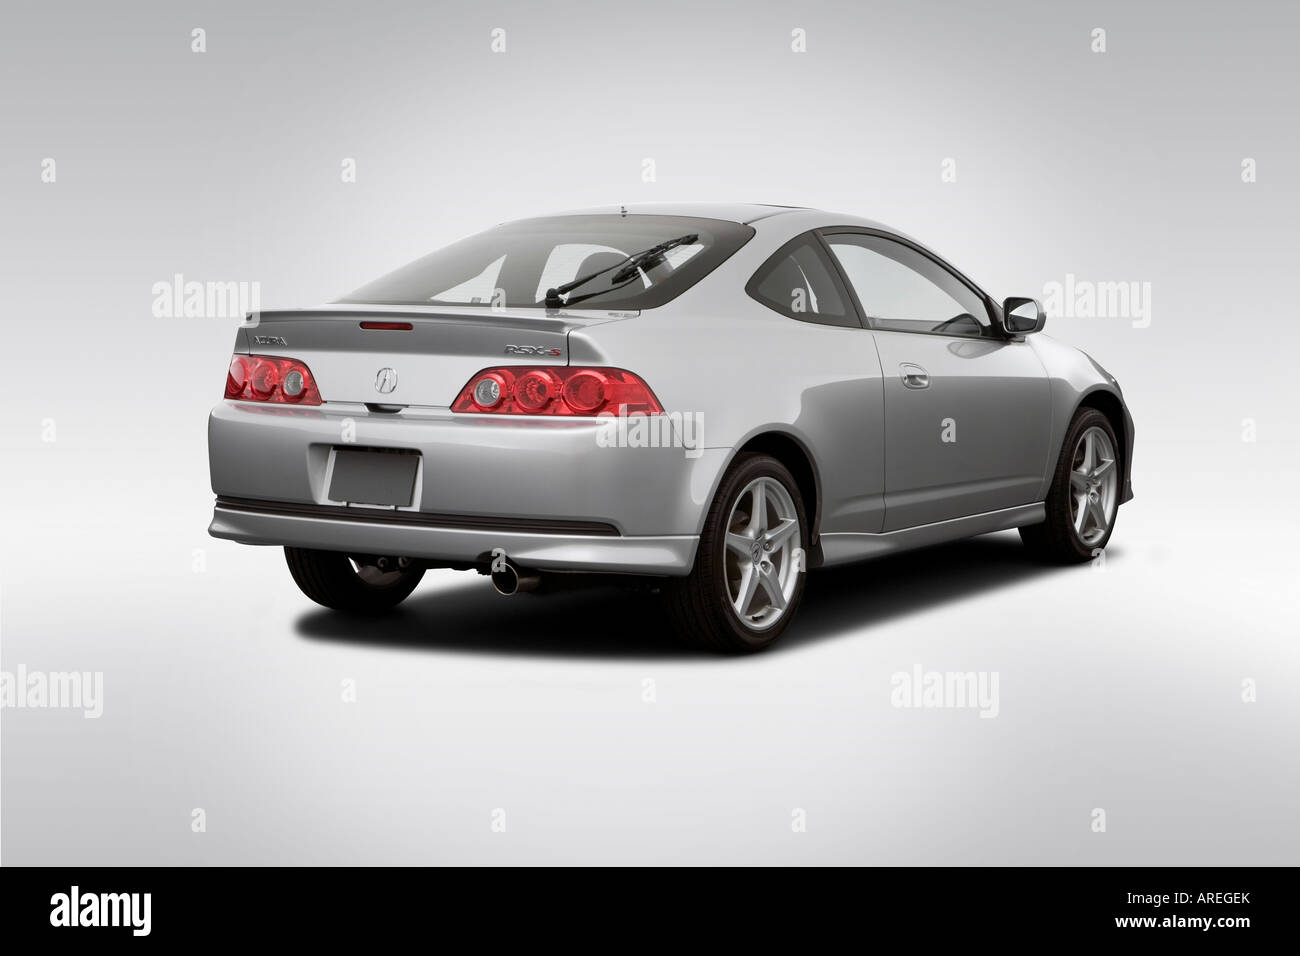 2006 Acura RSX Type-S in Silver - Rear angle view Stock